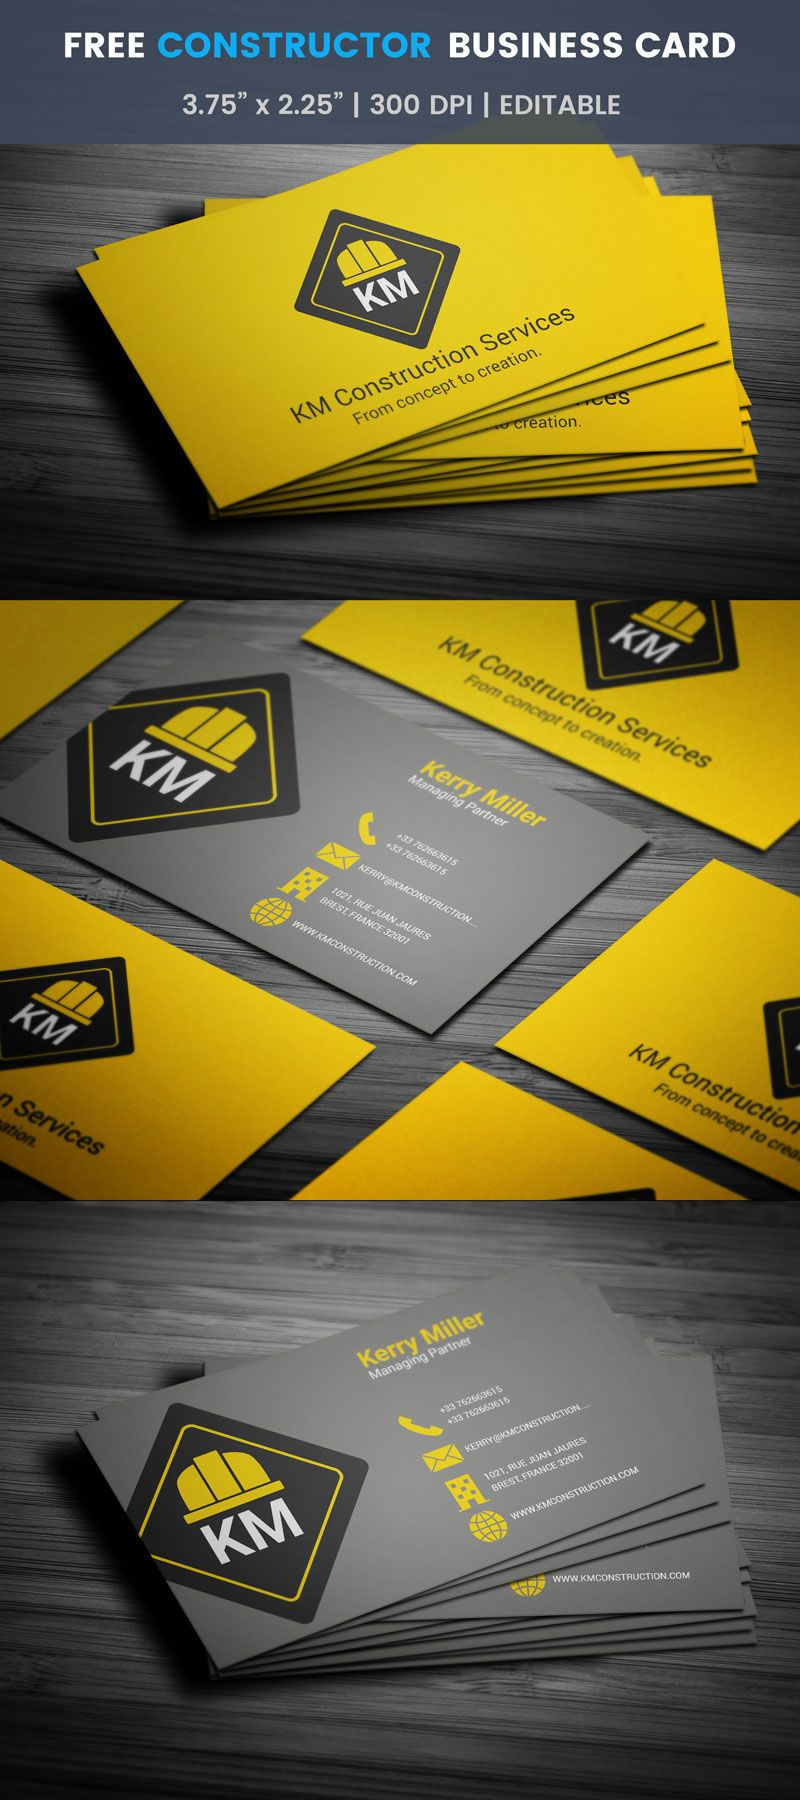 Free Renovation Business Card   Business cards, Business and Card ...